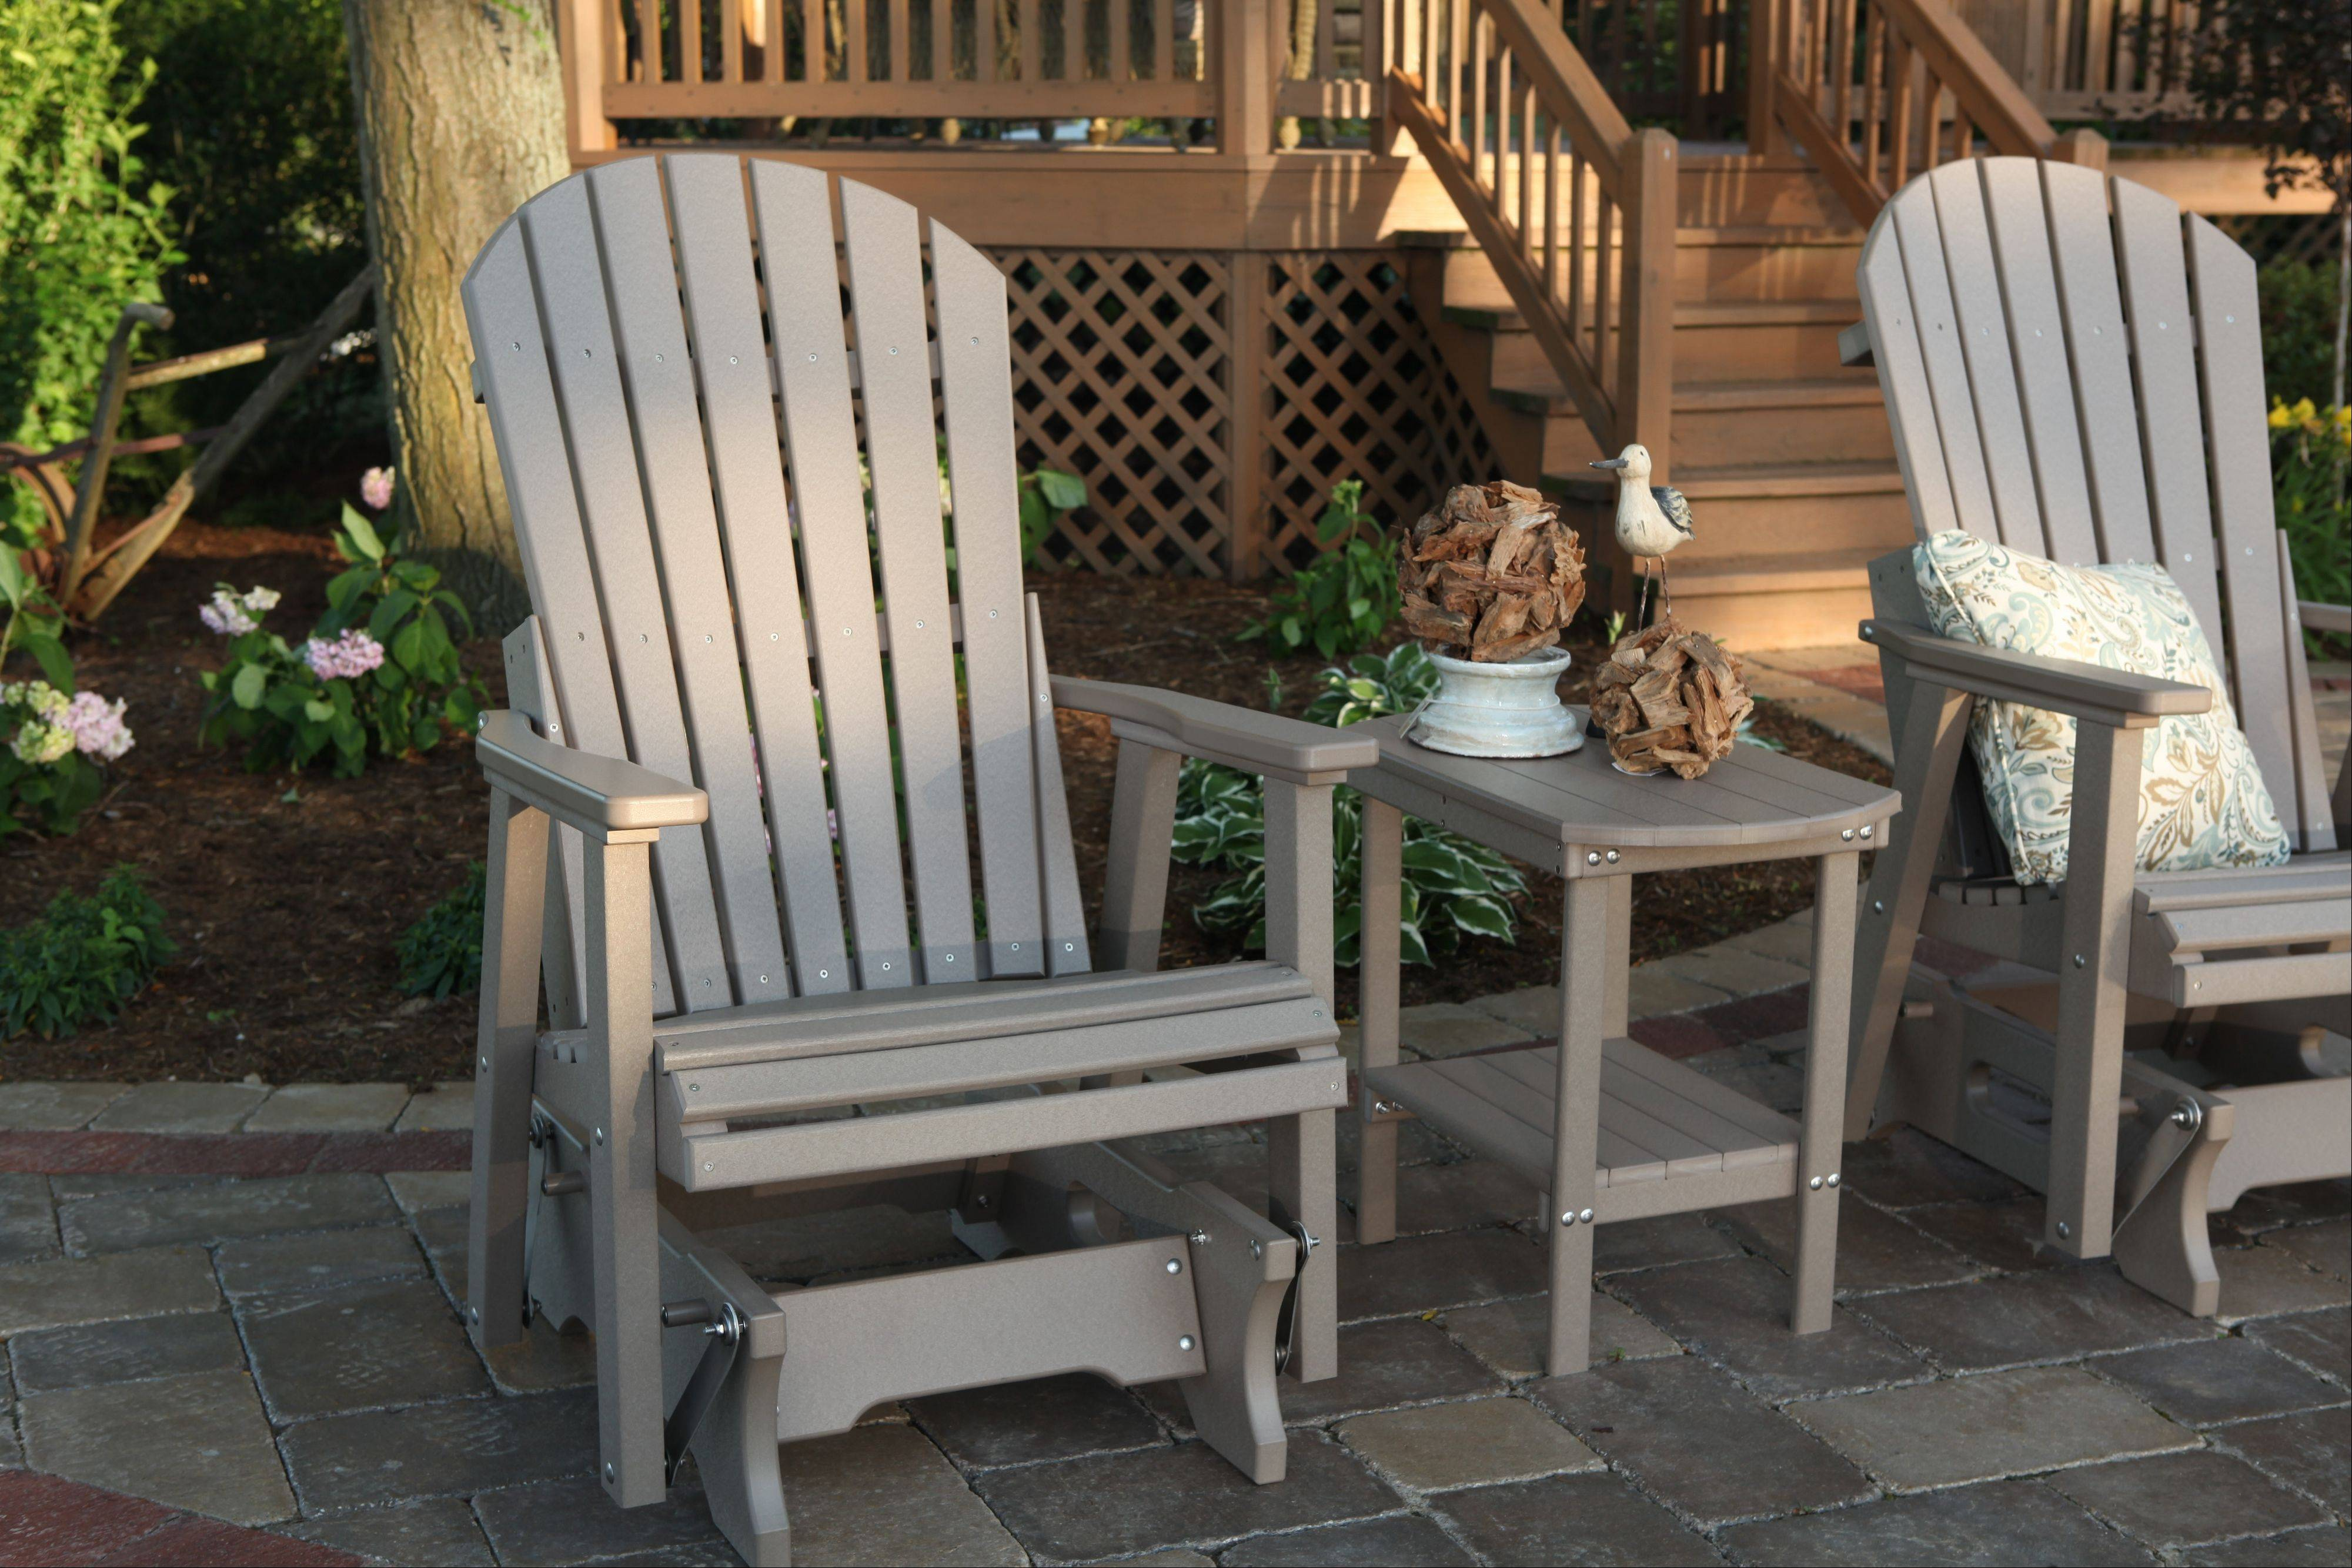 Adirondack-style rockers are among the newer seating options gaining popularity in outdoor spaces throughout the suburbs.